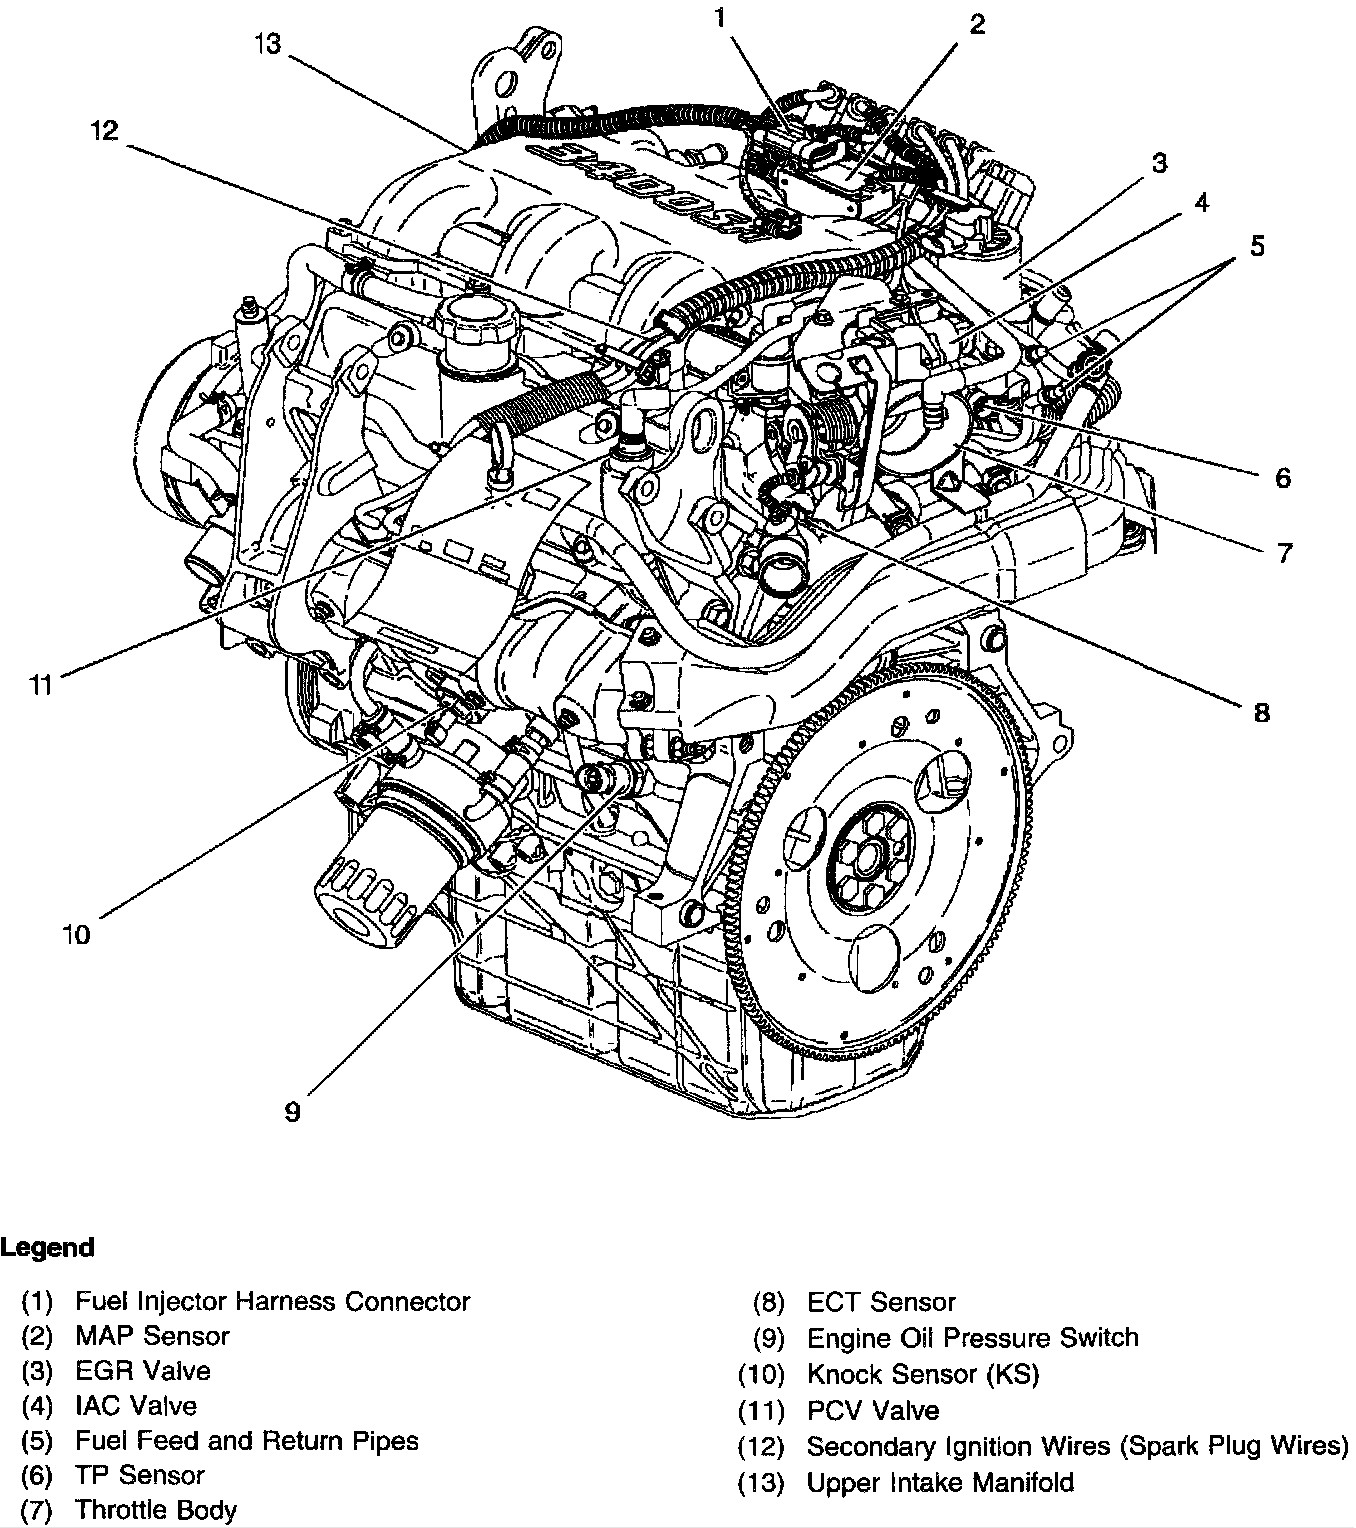 1995 mazda miata wiring diagram cy 4728  engine diagram together with equinox 3 4 v6 engine  engine diagram together with equinox